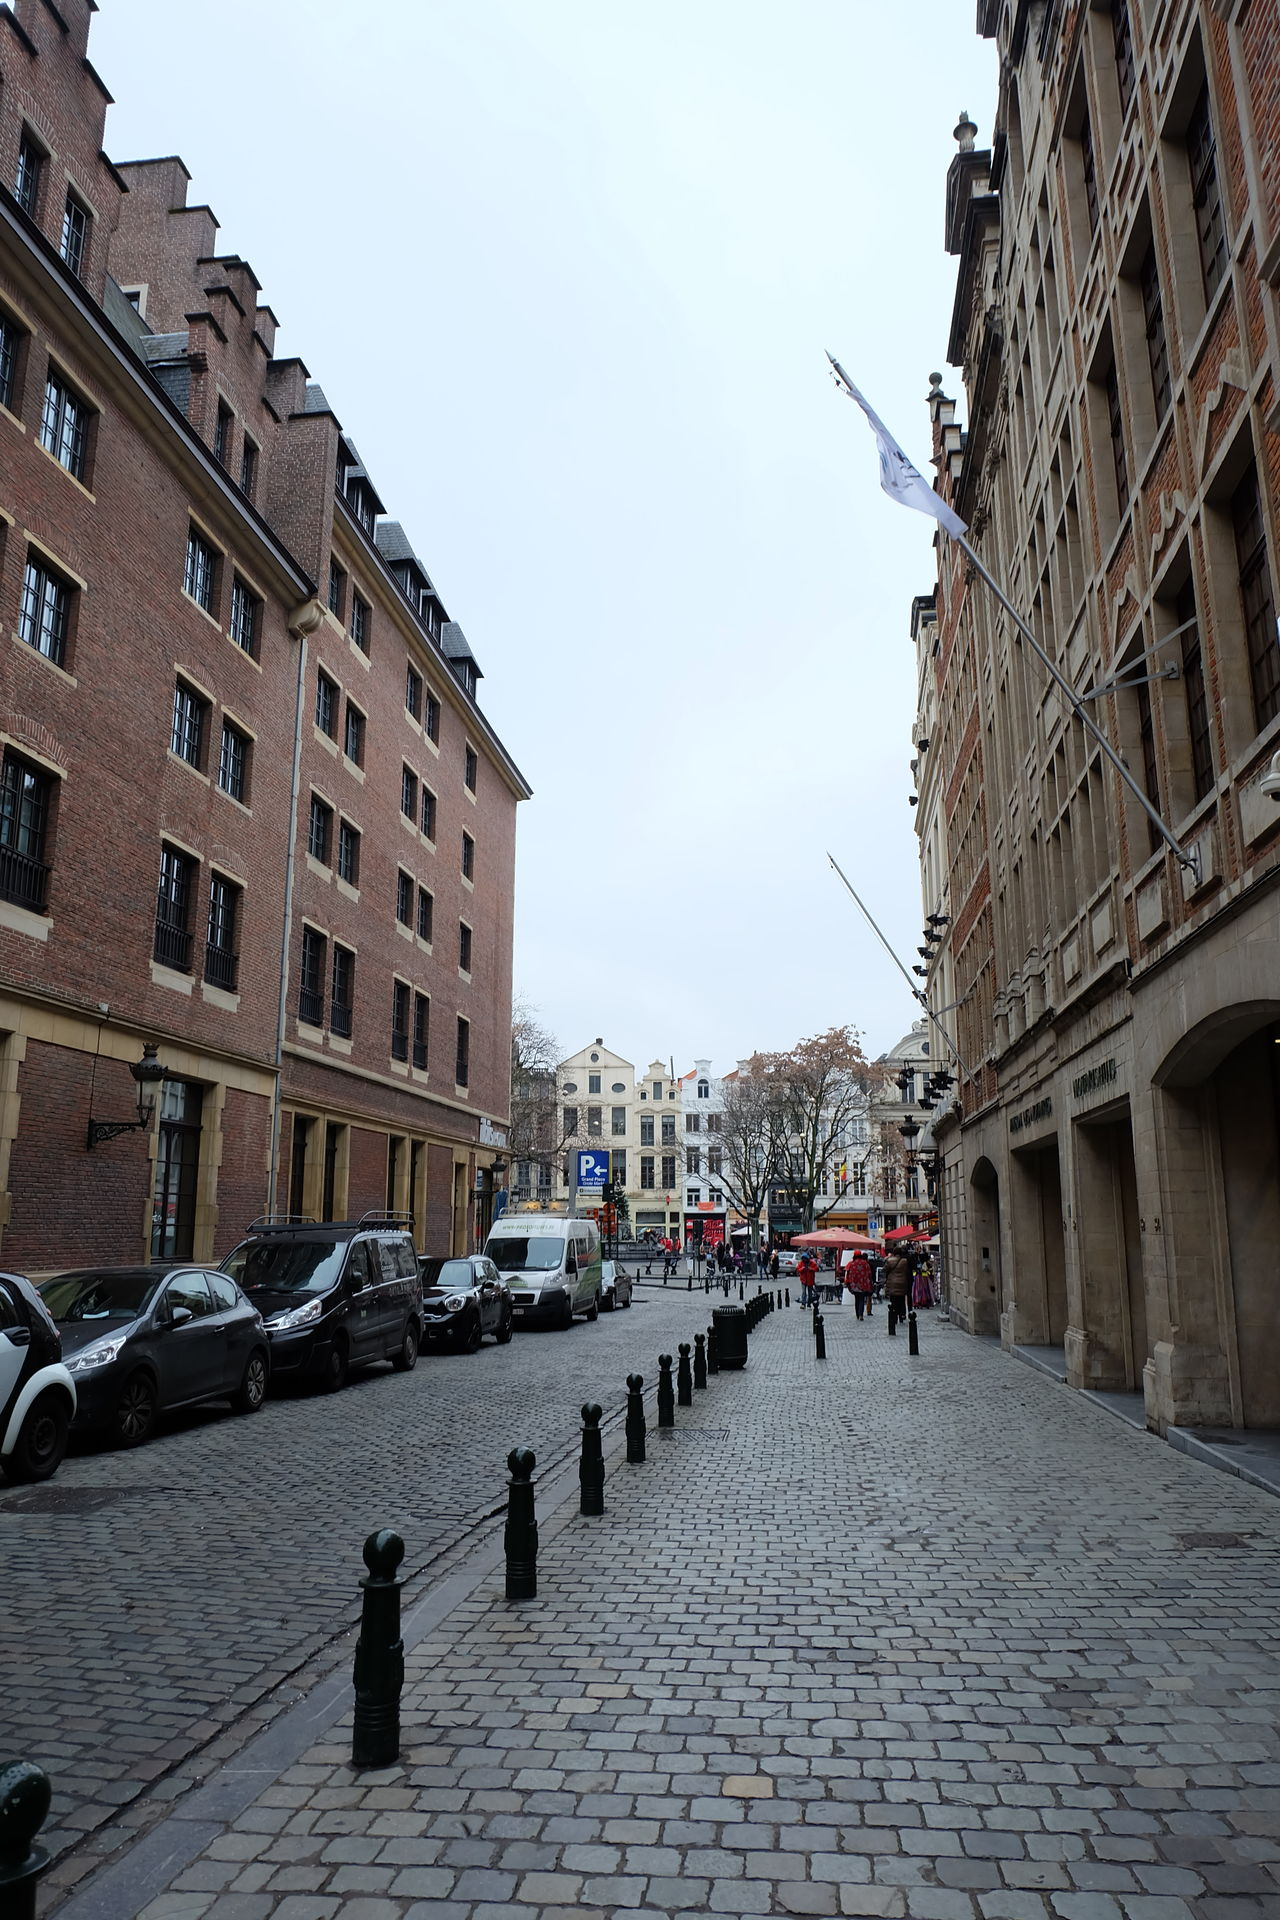 Brussels Alley Alley Alleyway Architecture Belgium Belgium. Belgique. Belgie. Belgien. Etc. Belgium♡ Brussel Brussel Street Brussels Brussels❤️ Building Exterior Built Structure City City Street Clear Sky Day Large Group Of People Old Town Outdoors People Sky Street Street Photography Streetphotography Travel Destinations